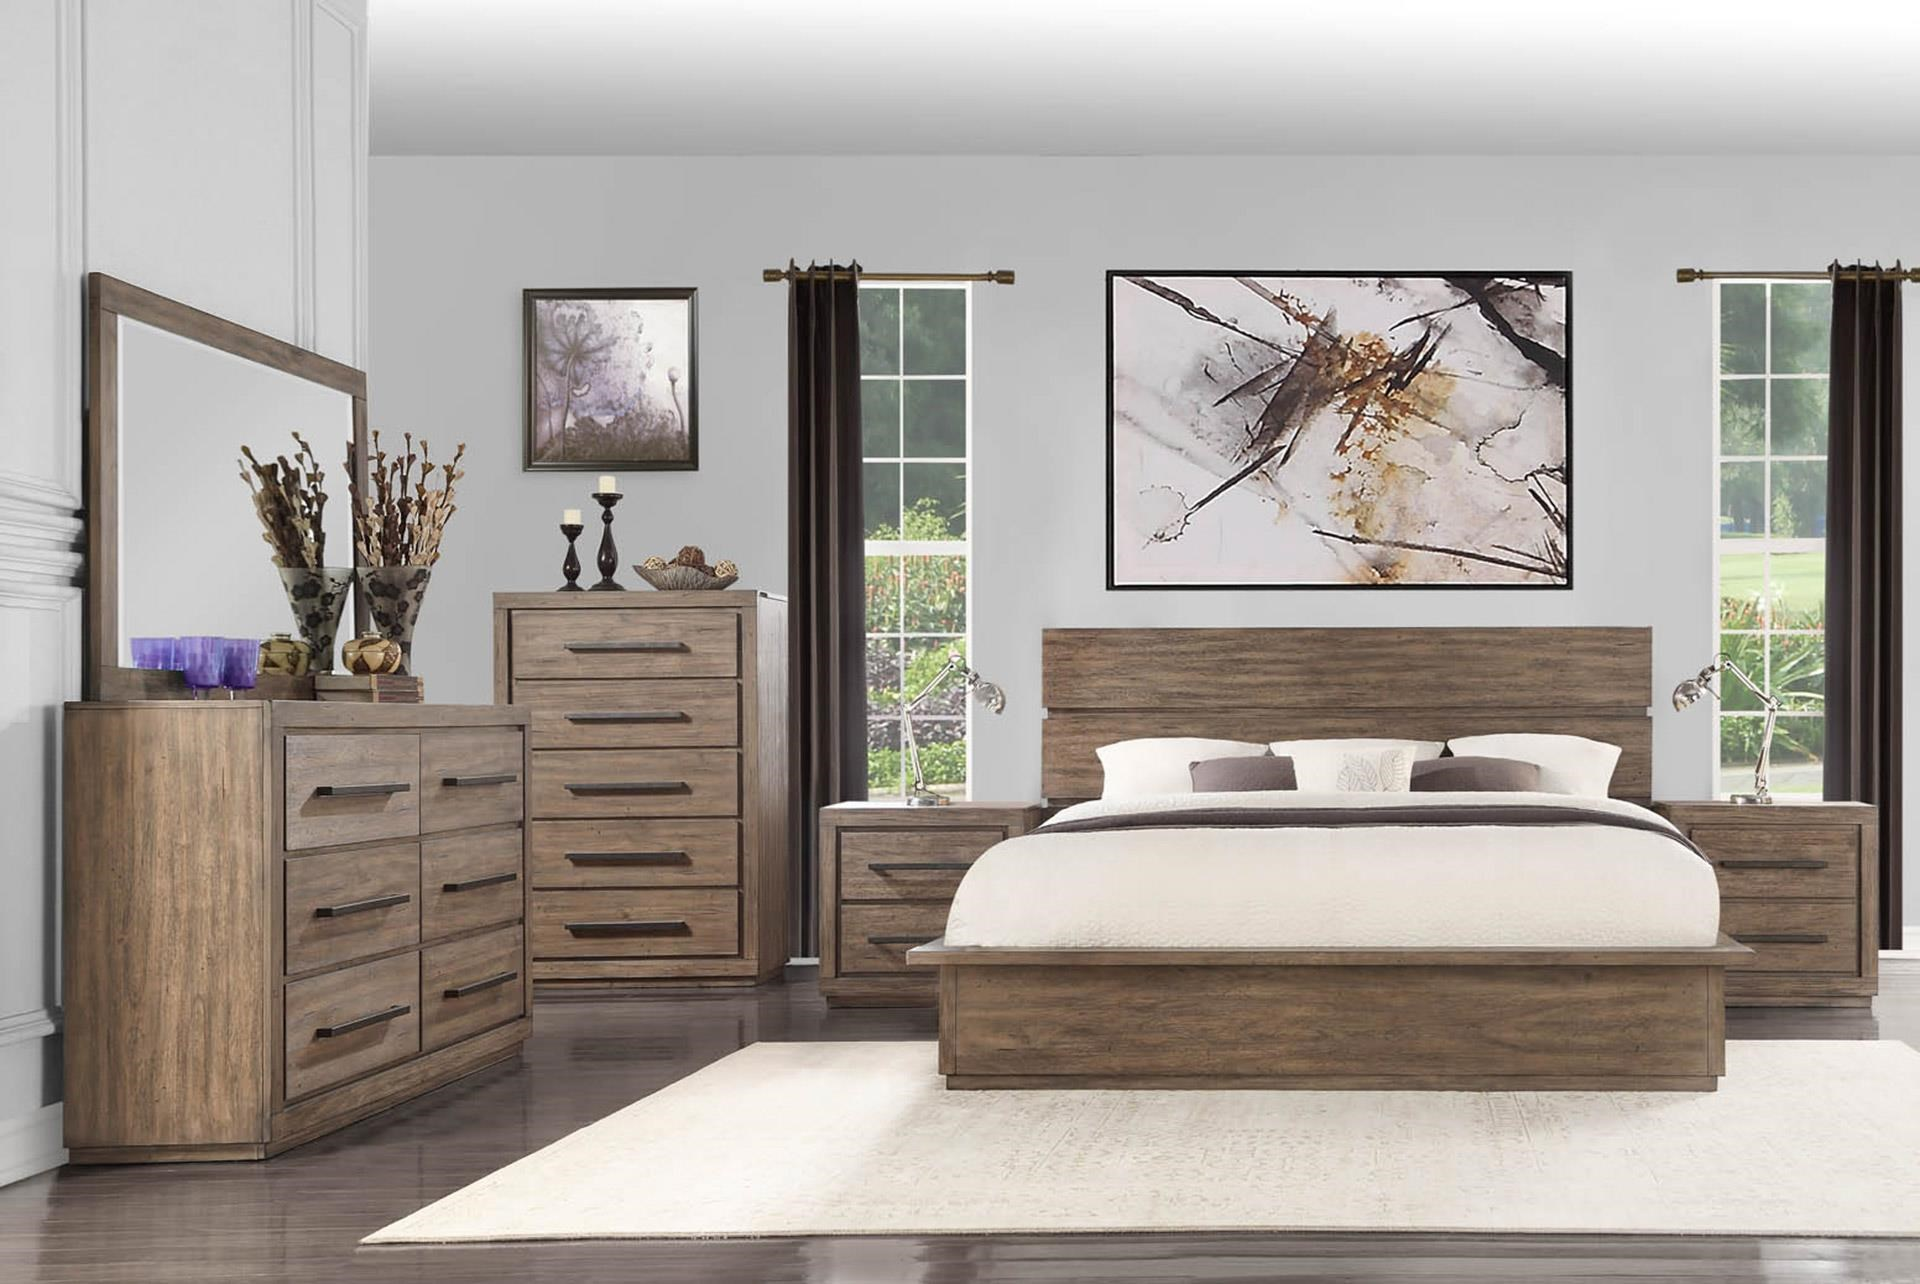 King Bed with Dresser, Mirror, and Nightstan